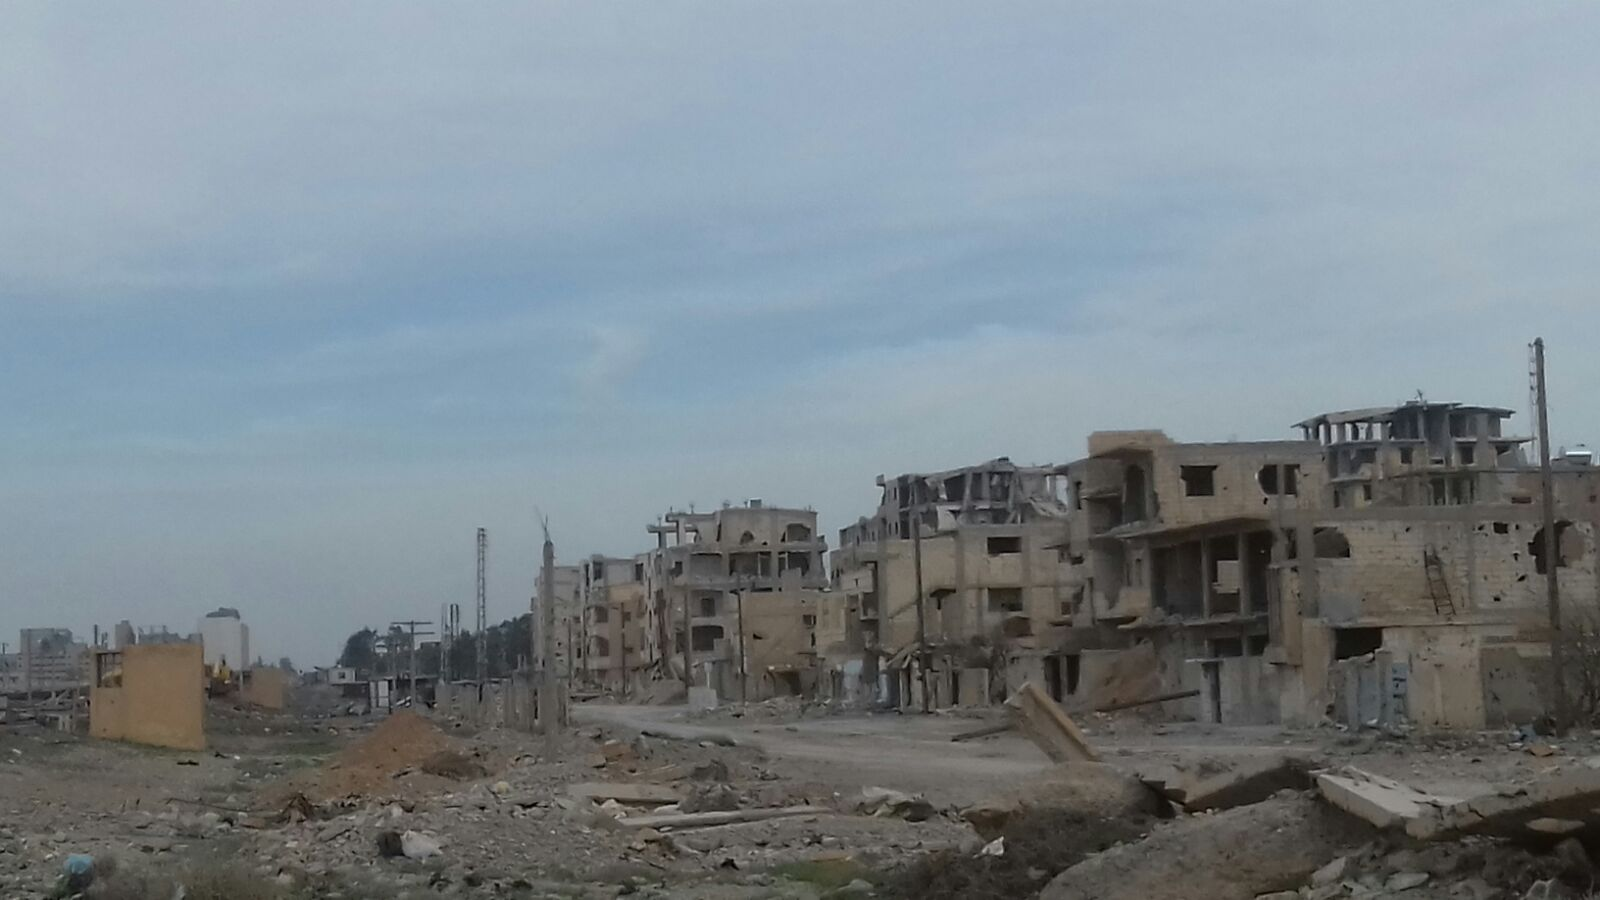 Destroyed residential buildings in Ar-Raqqa city. ©REACH/2018